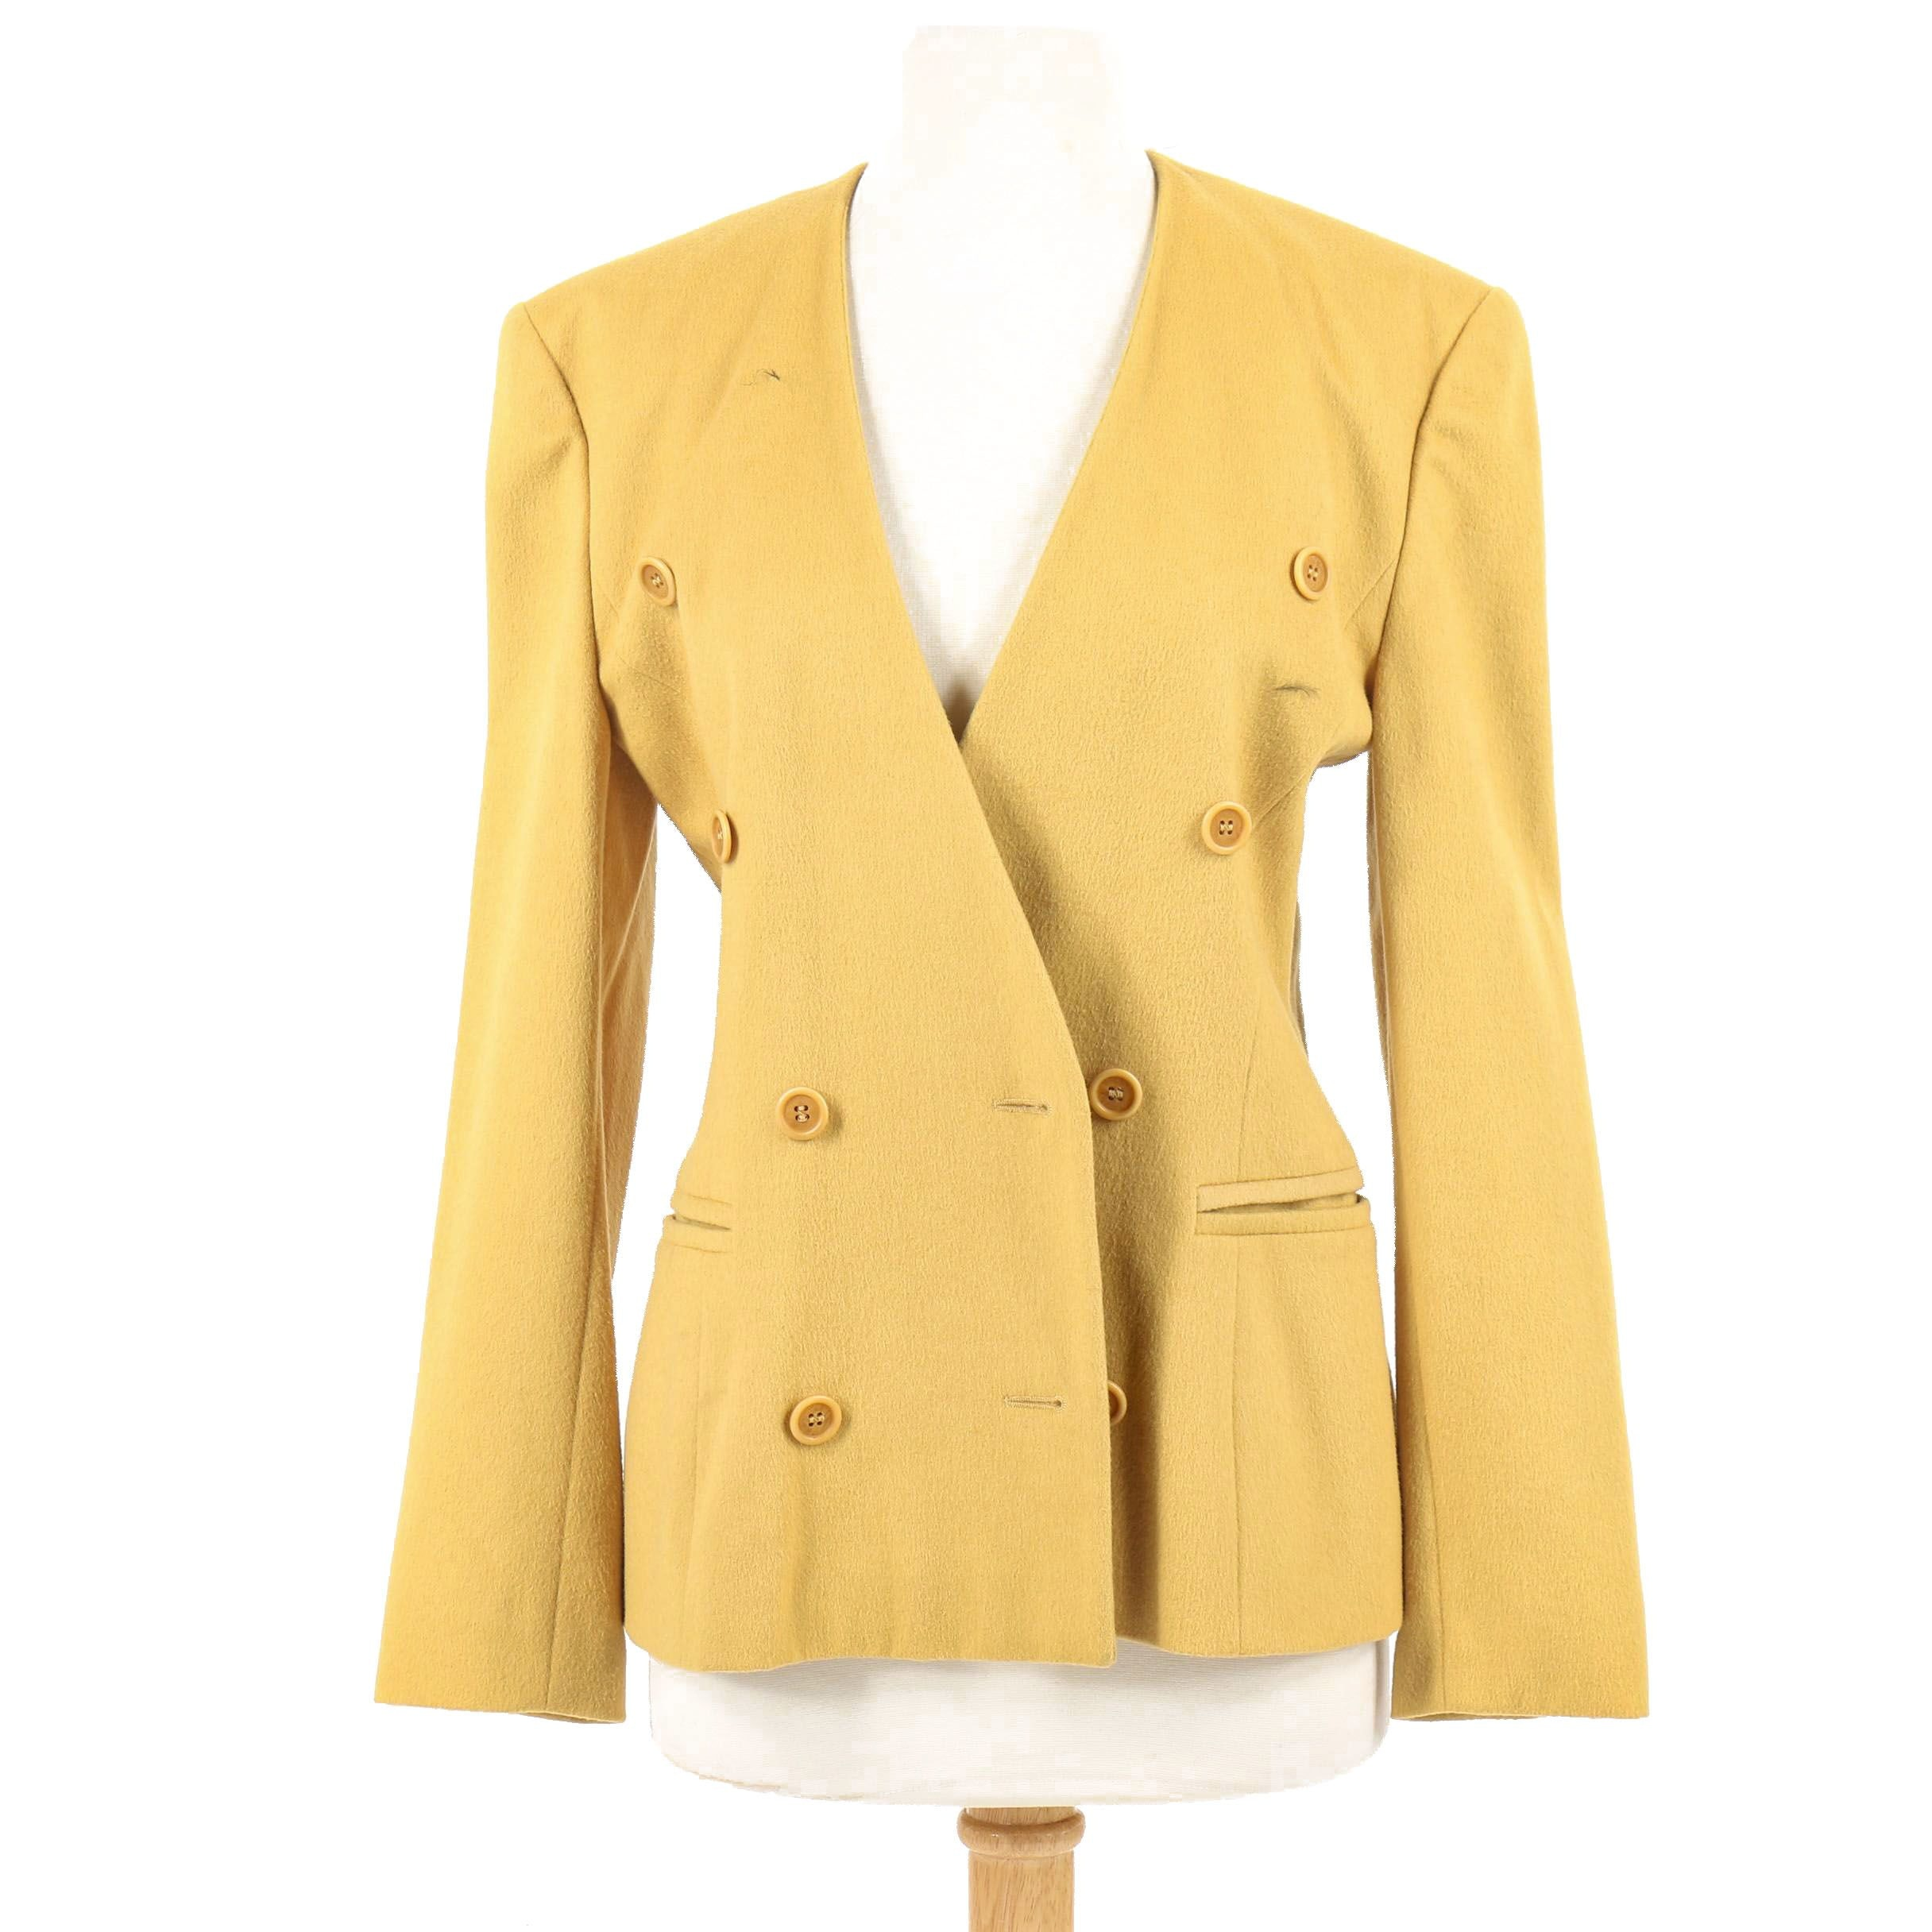 Escada Mustard Yellow Wool and Cashmere Blend Double-Breasted Jacket, Vintage